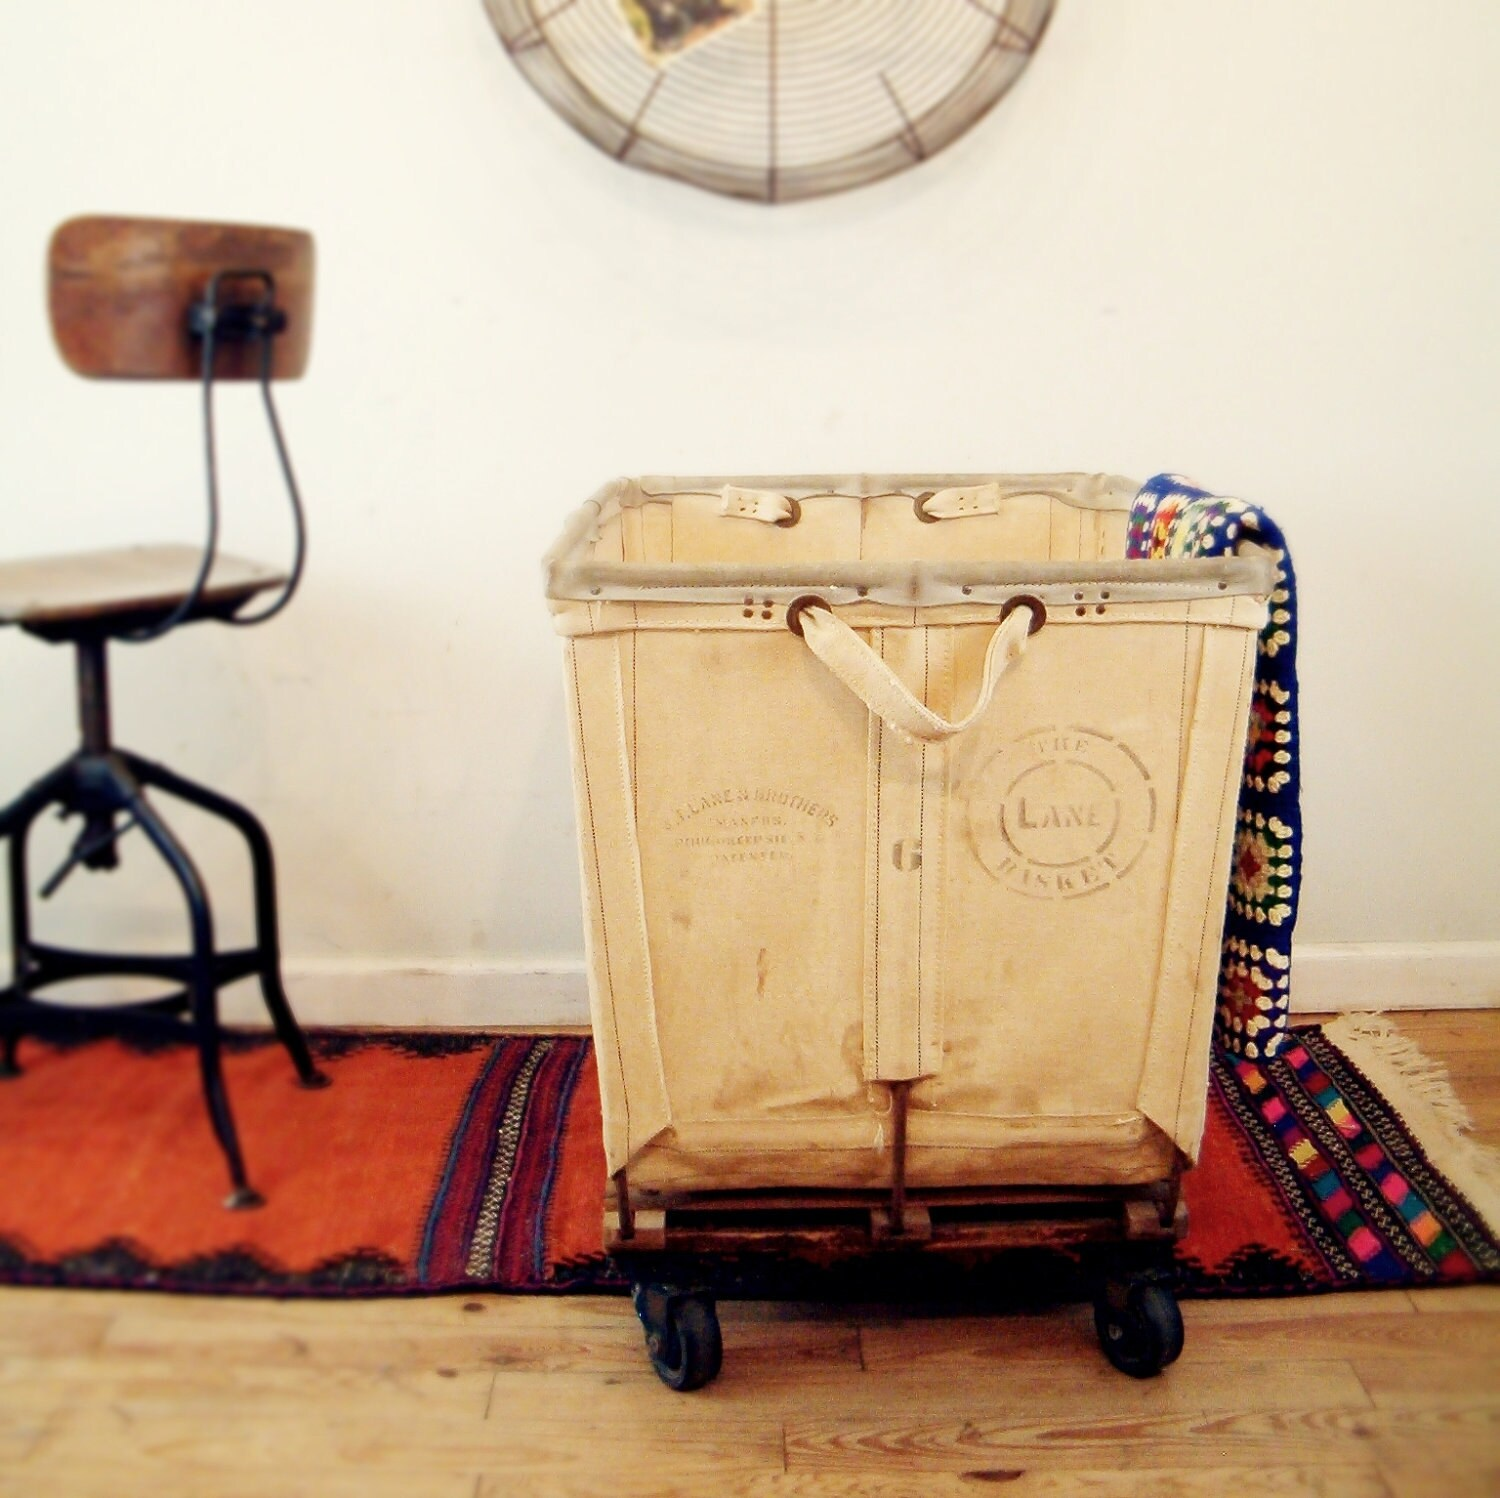 circa 1940 vintage industrial laundry cart lane 6